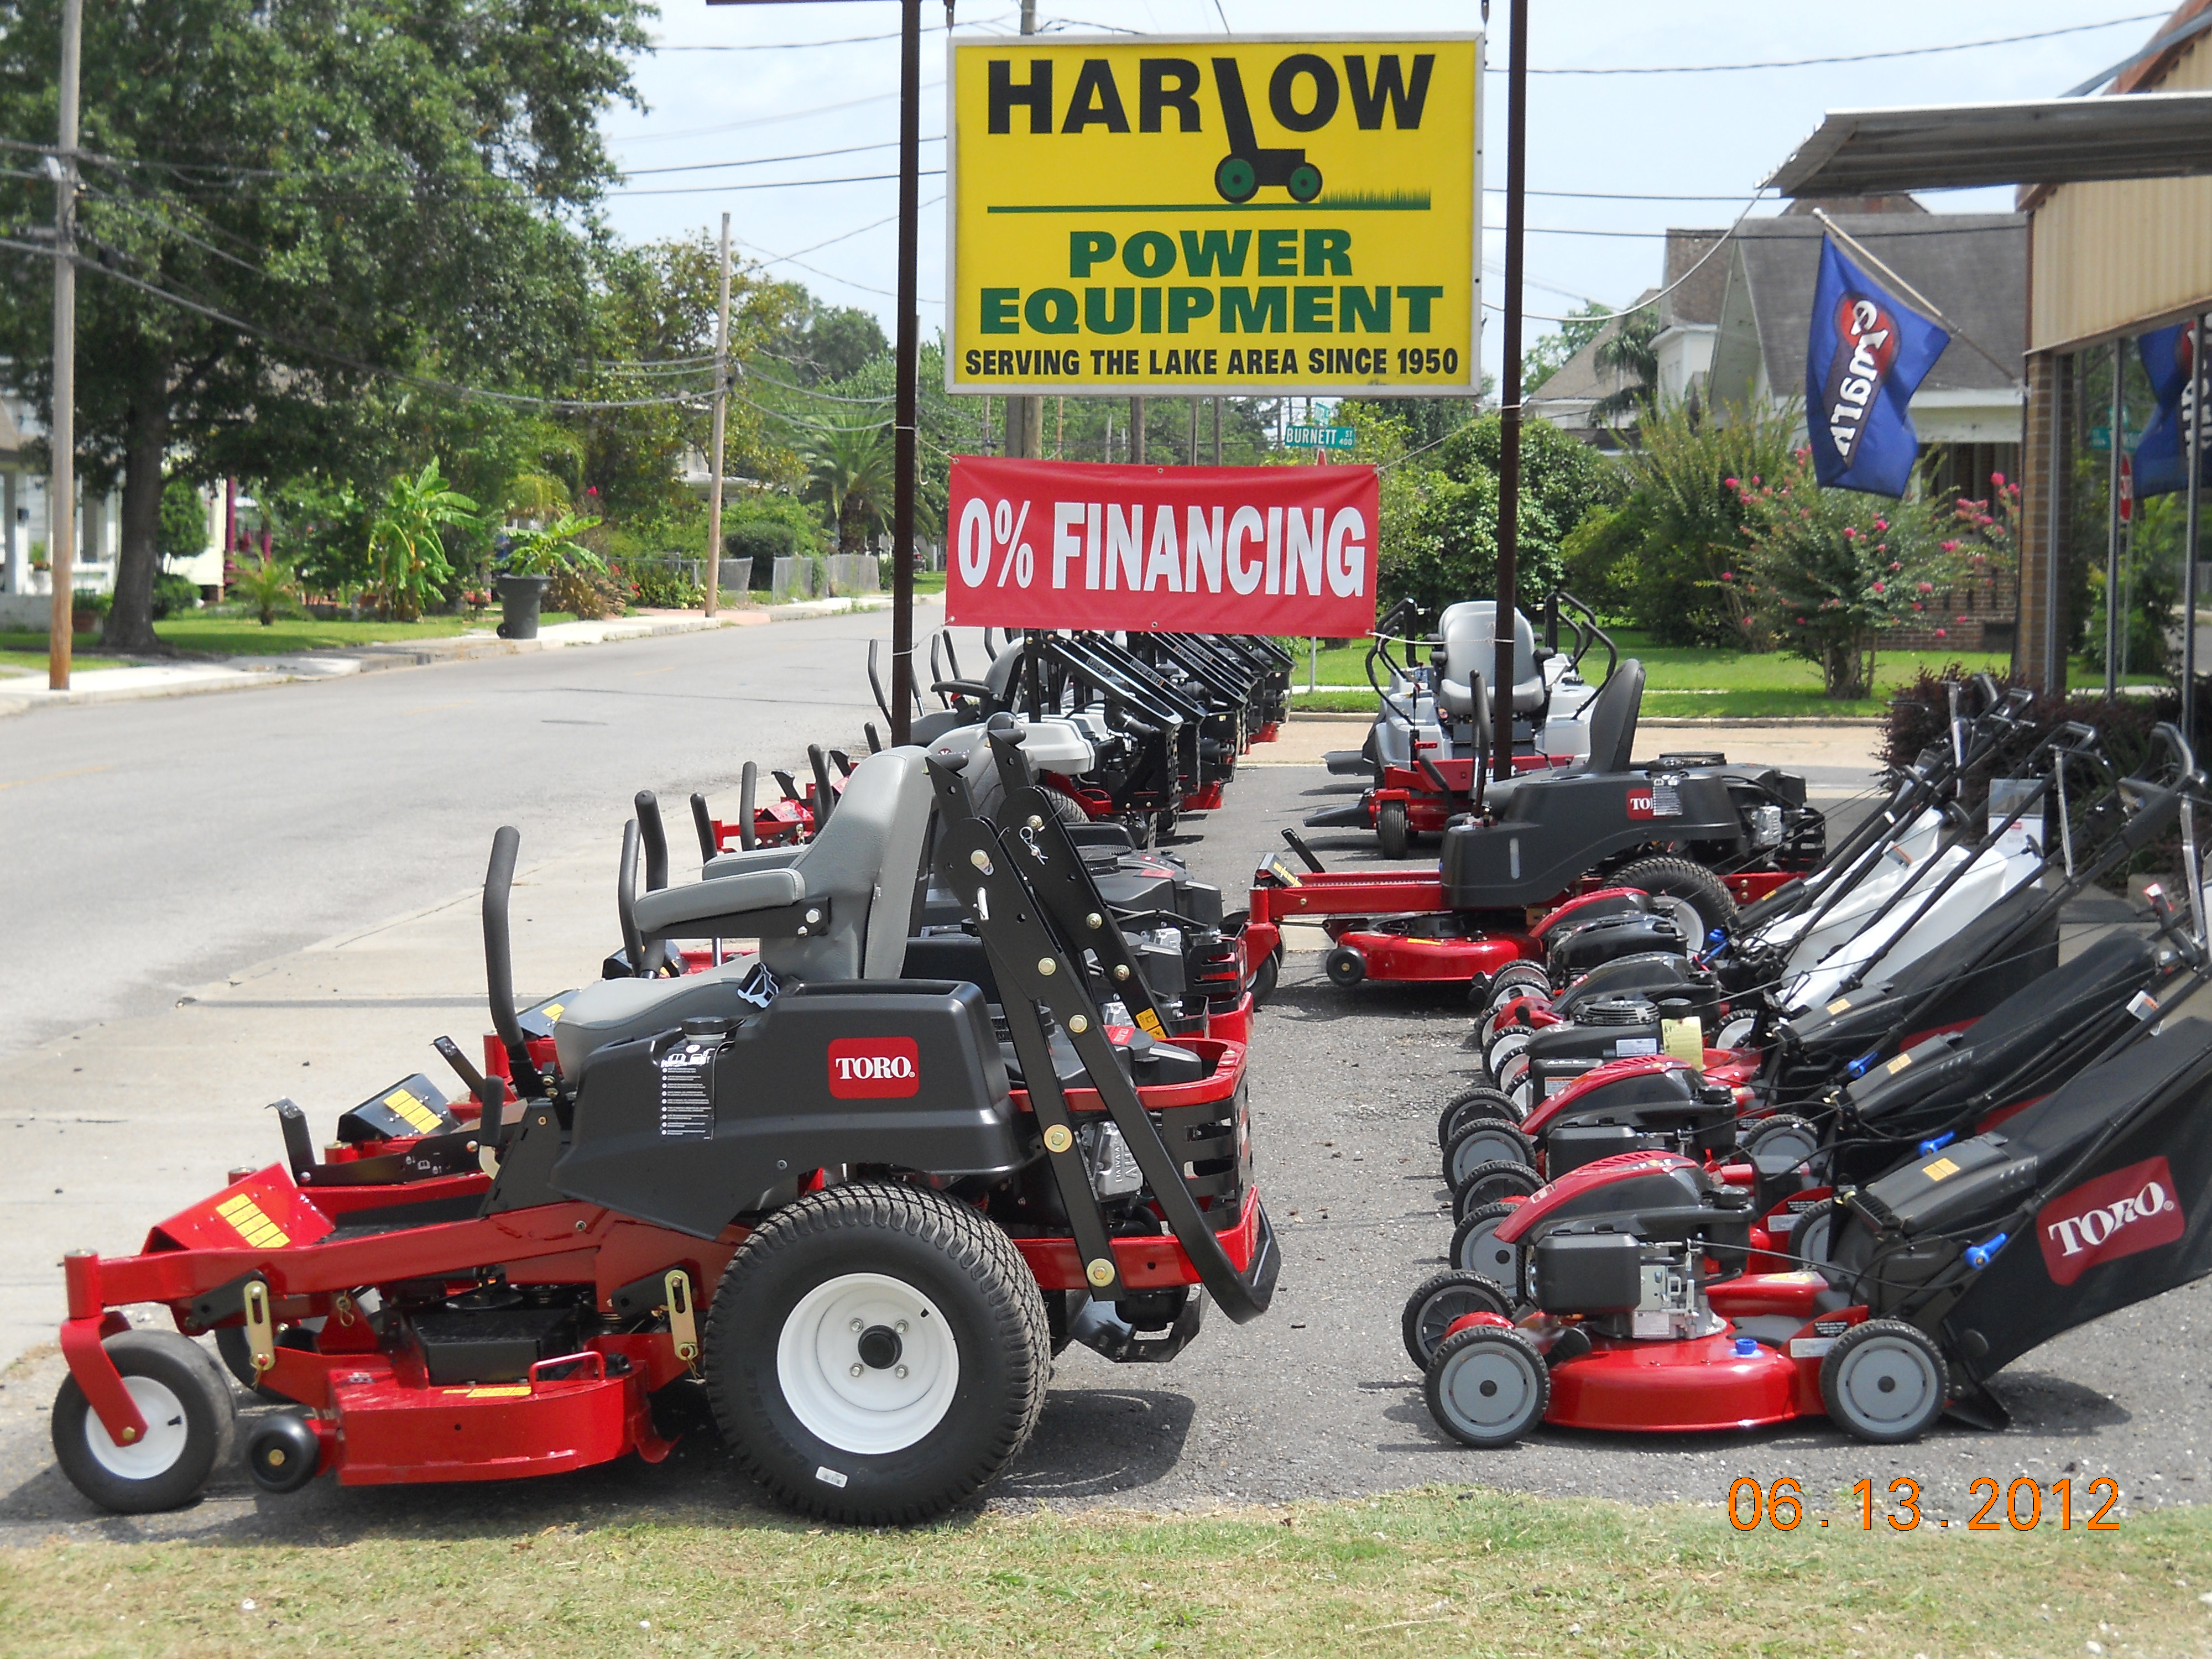 Harlow Lawn Mower Sales Coupons Near Me In Lake Charles